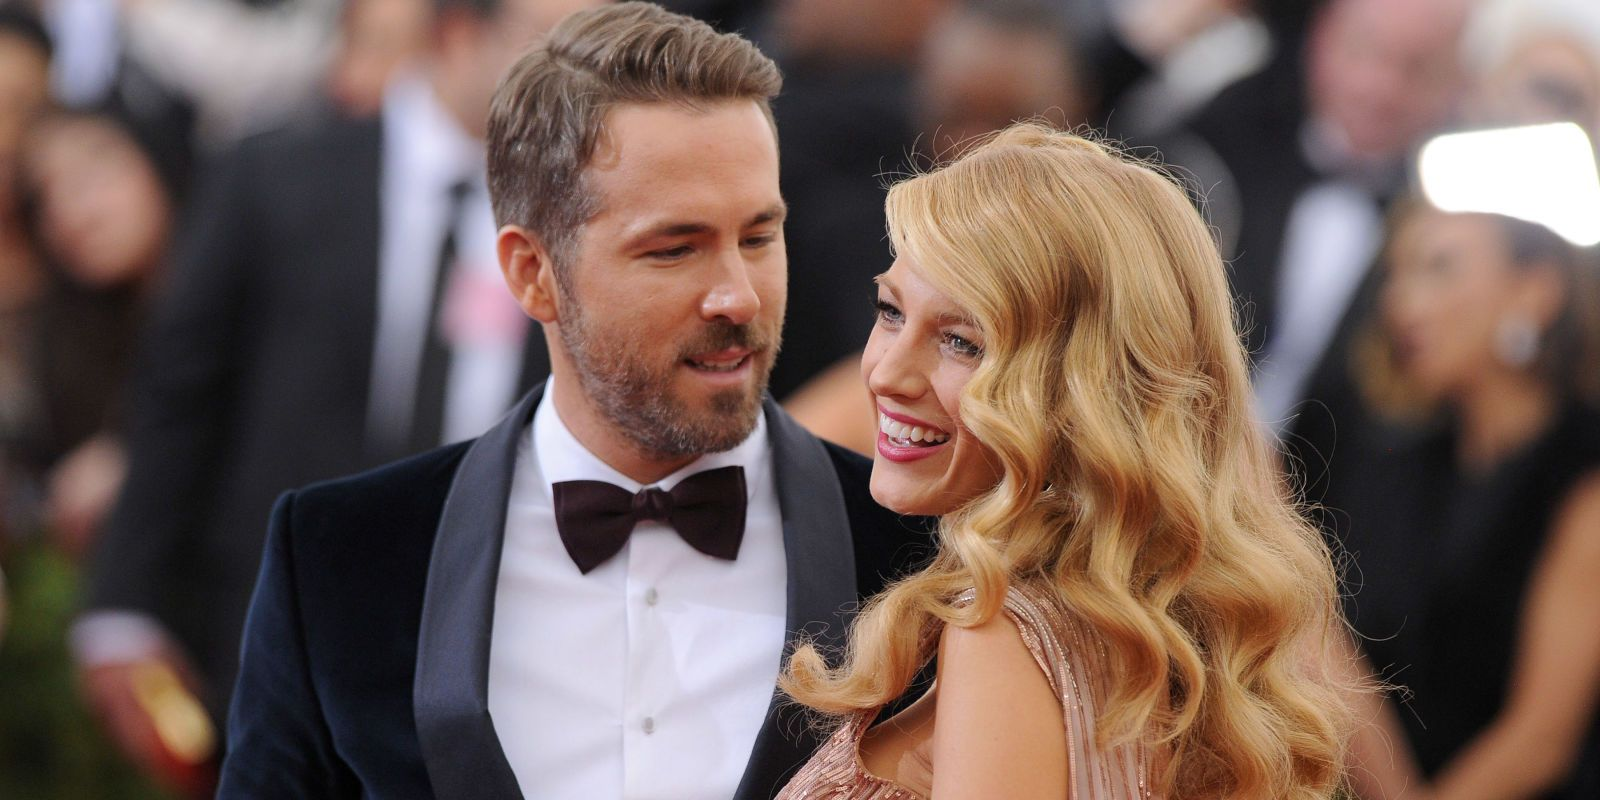 Ryan Reynolds on the Moment He Knew Blake Lively Was the One